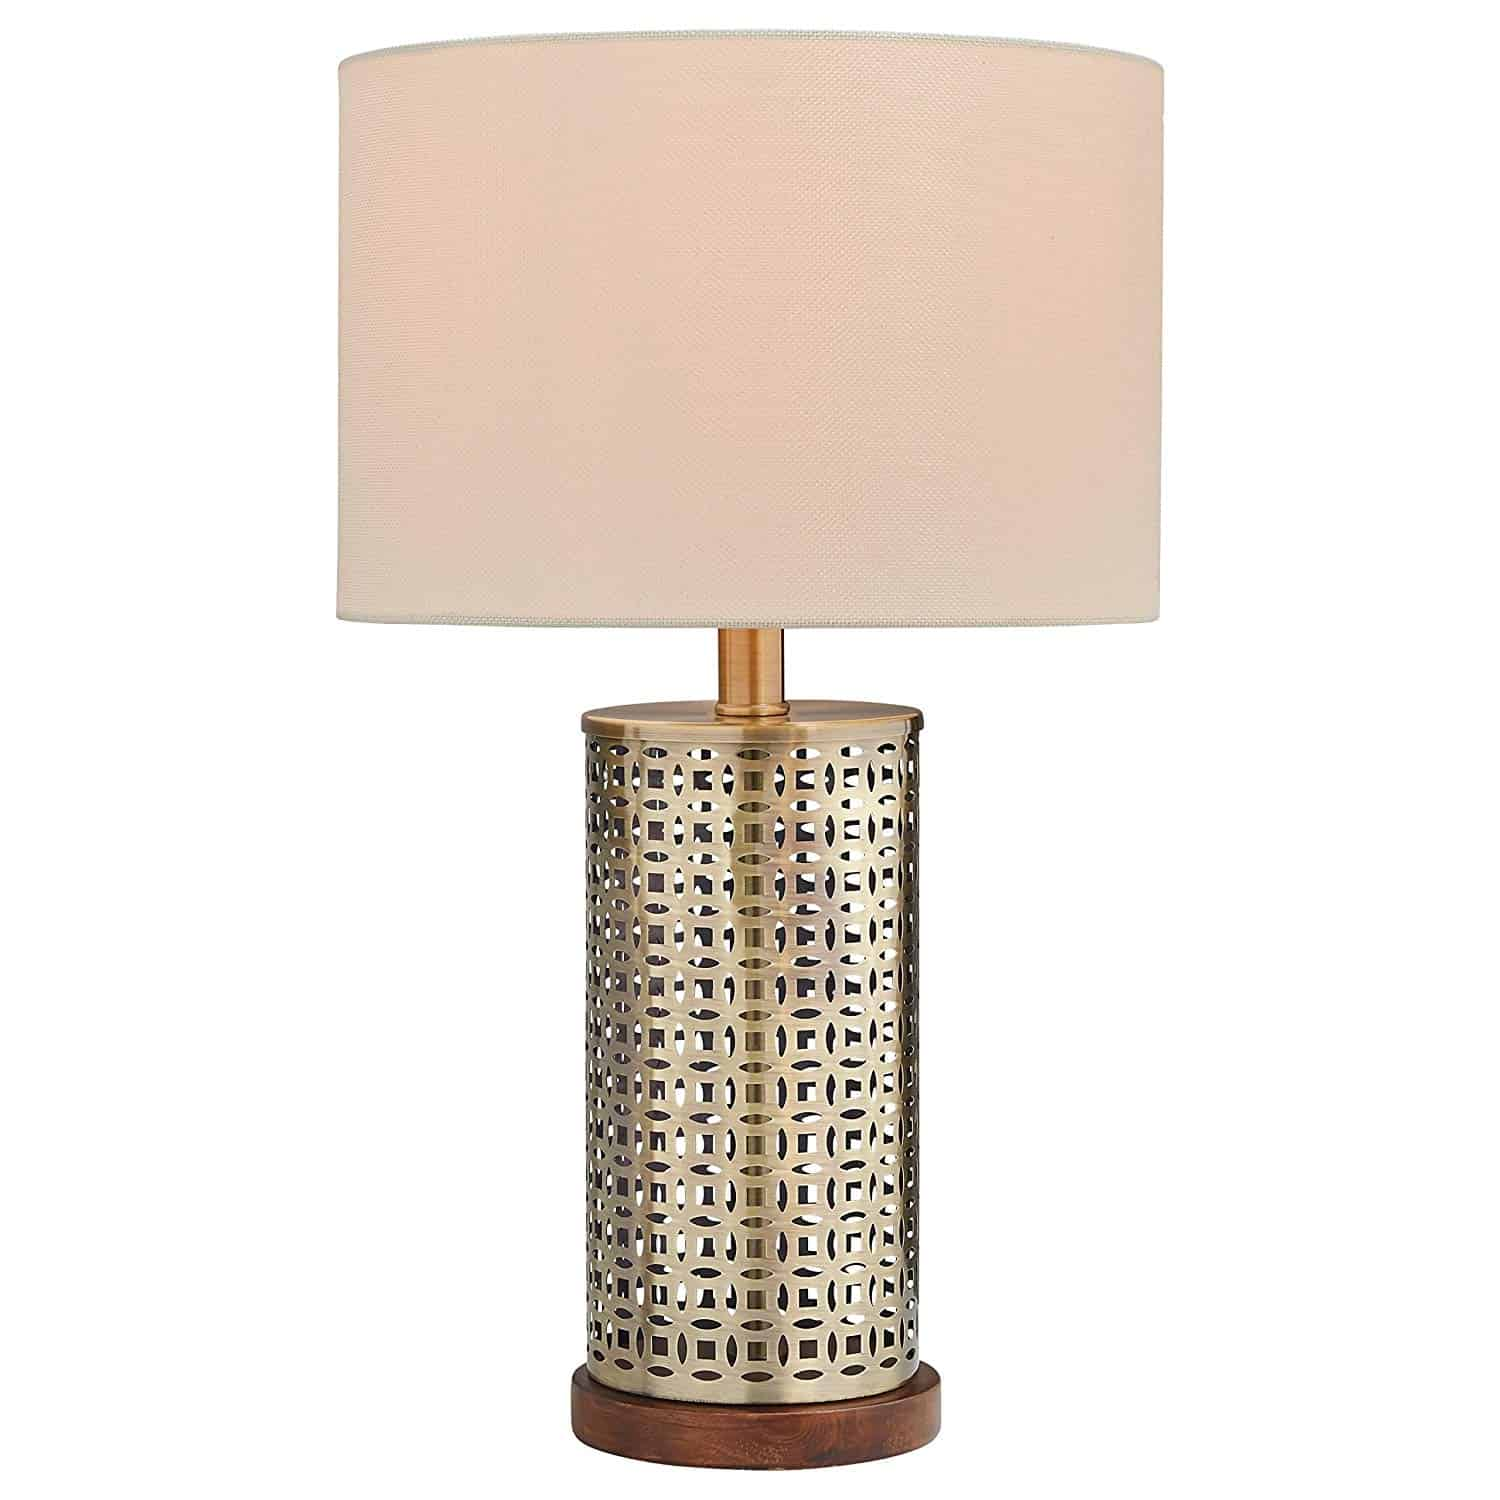 Stone & Beam Modern Mesh Table Lamp